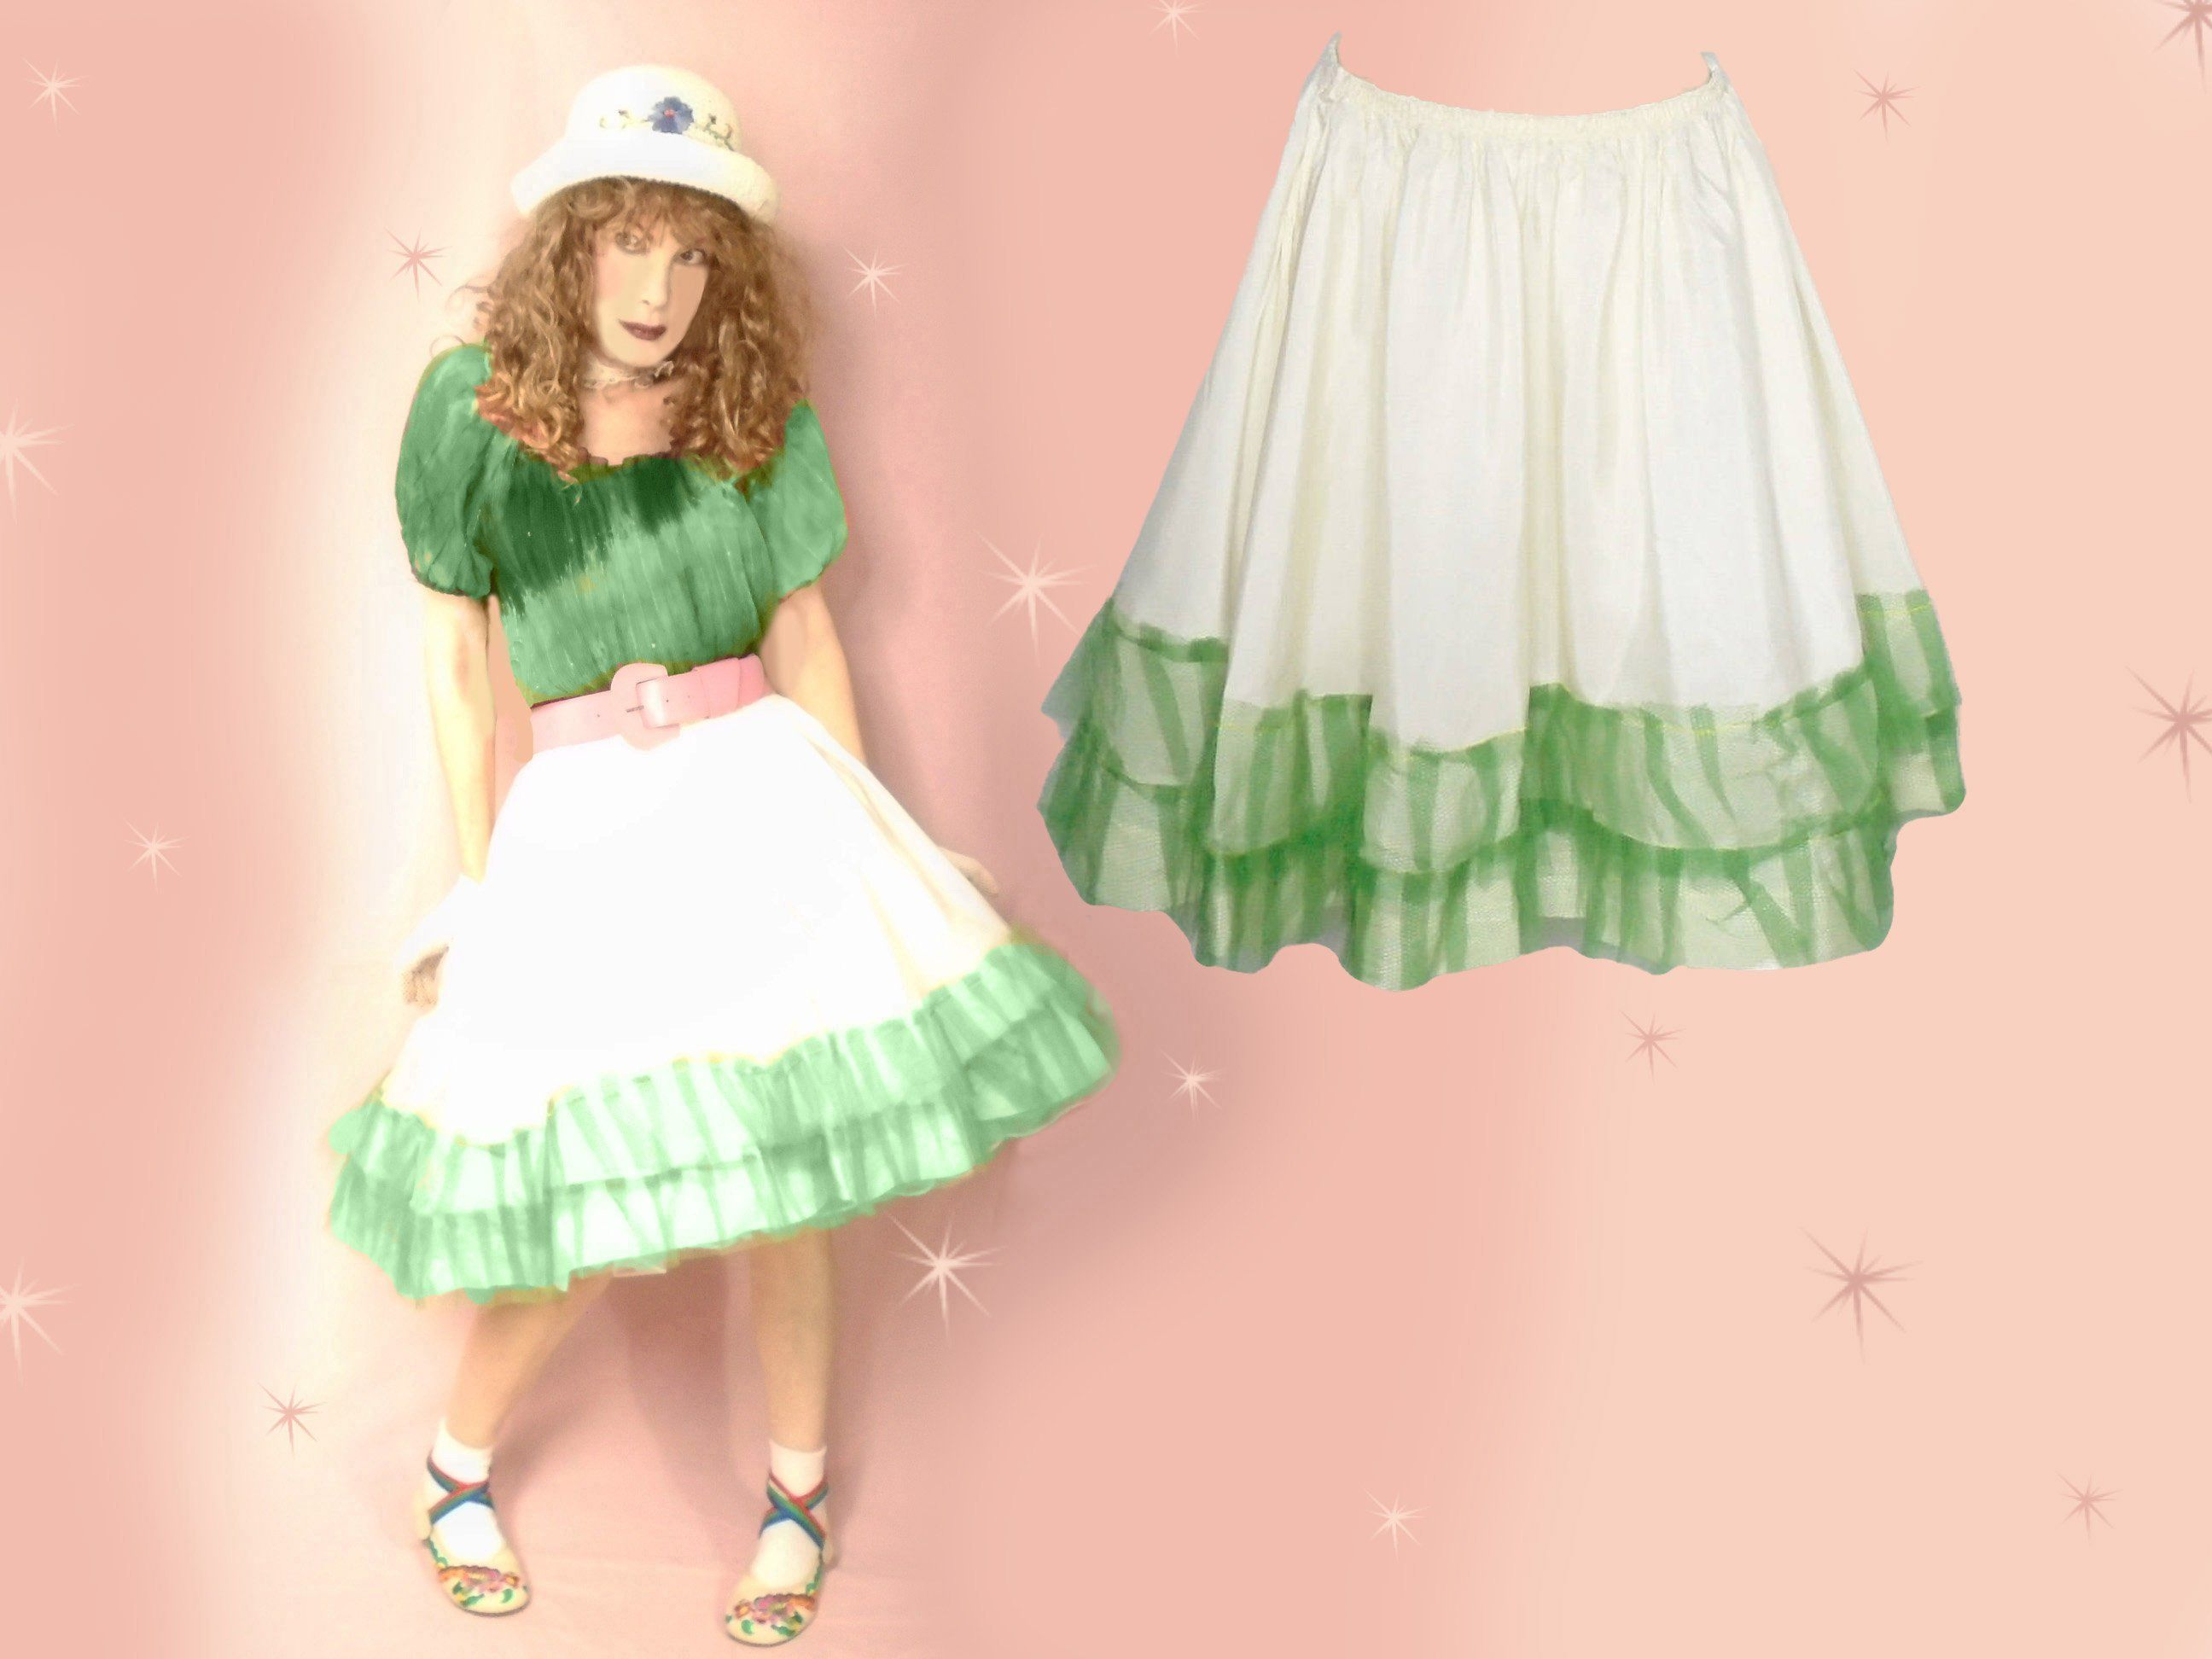 154083520a Vintage 50s Taffeta Circle Skirt Petticoat, Plus Size, One Size, Kawaii  Lolita Cosplay Full Skirts, Unique Eclectic Edgy Clothing by  LunaJunctionVintage on ...